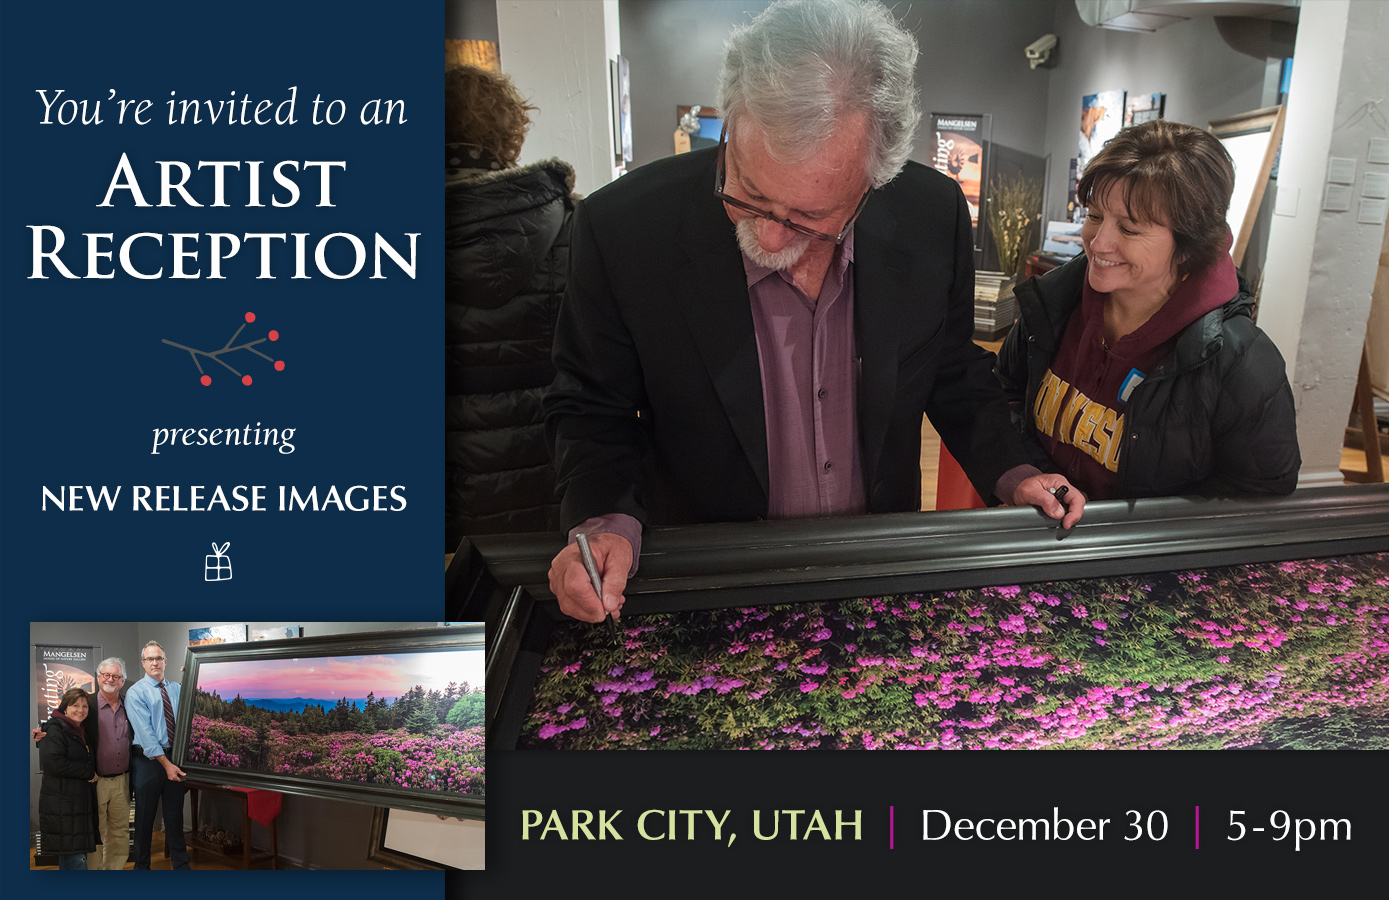 Join us for a holiday reception in Park City. Tom will